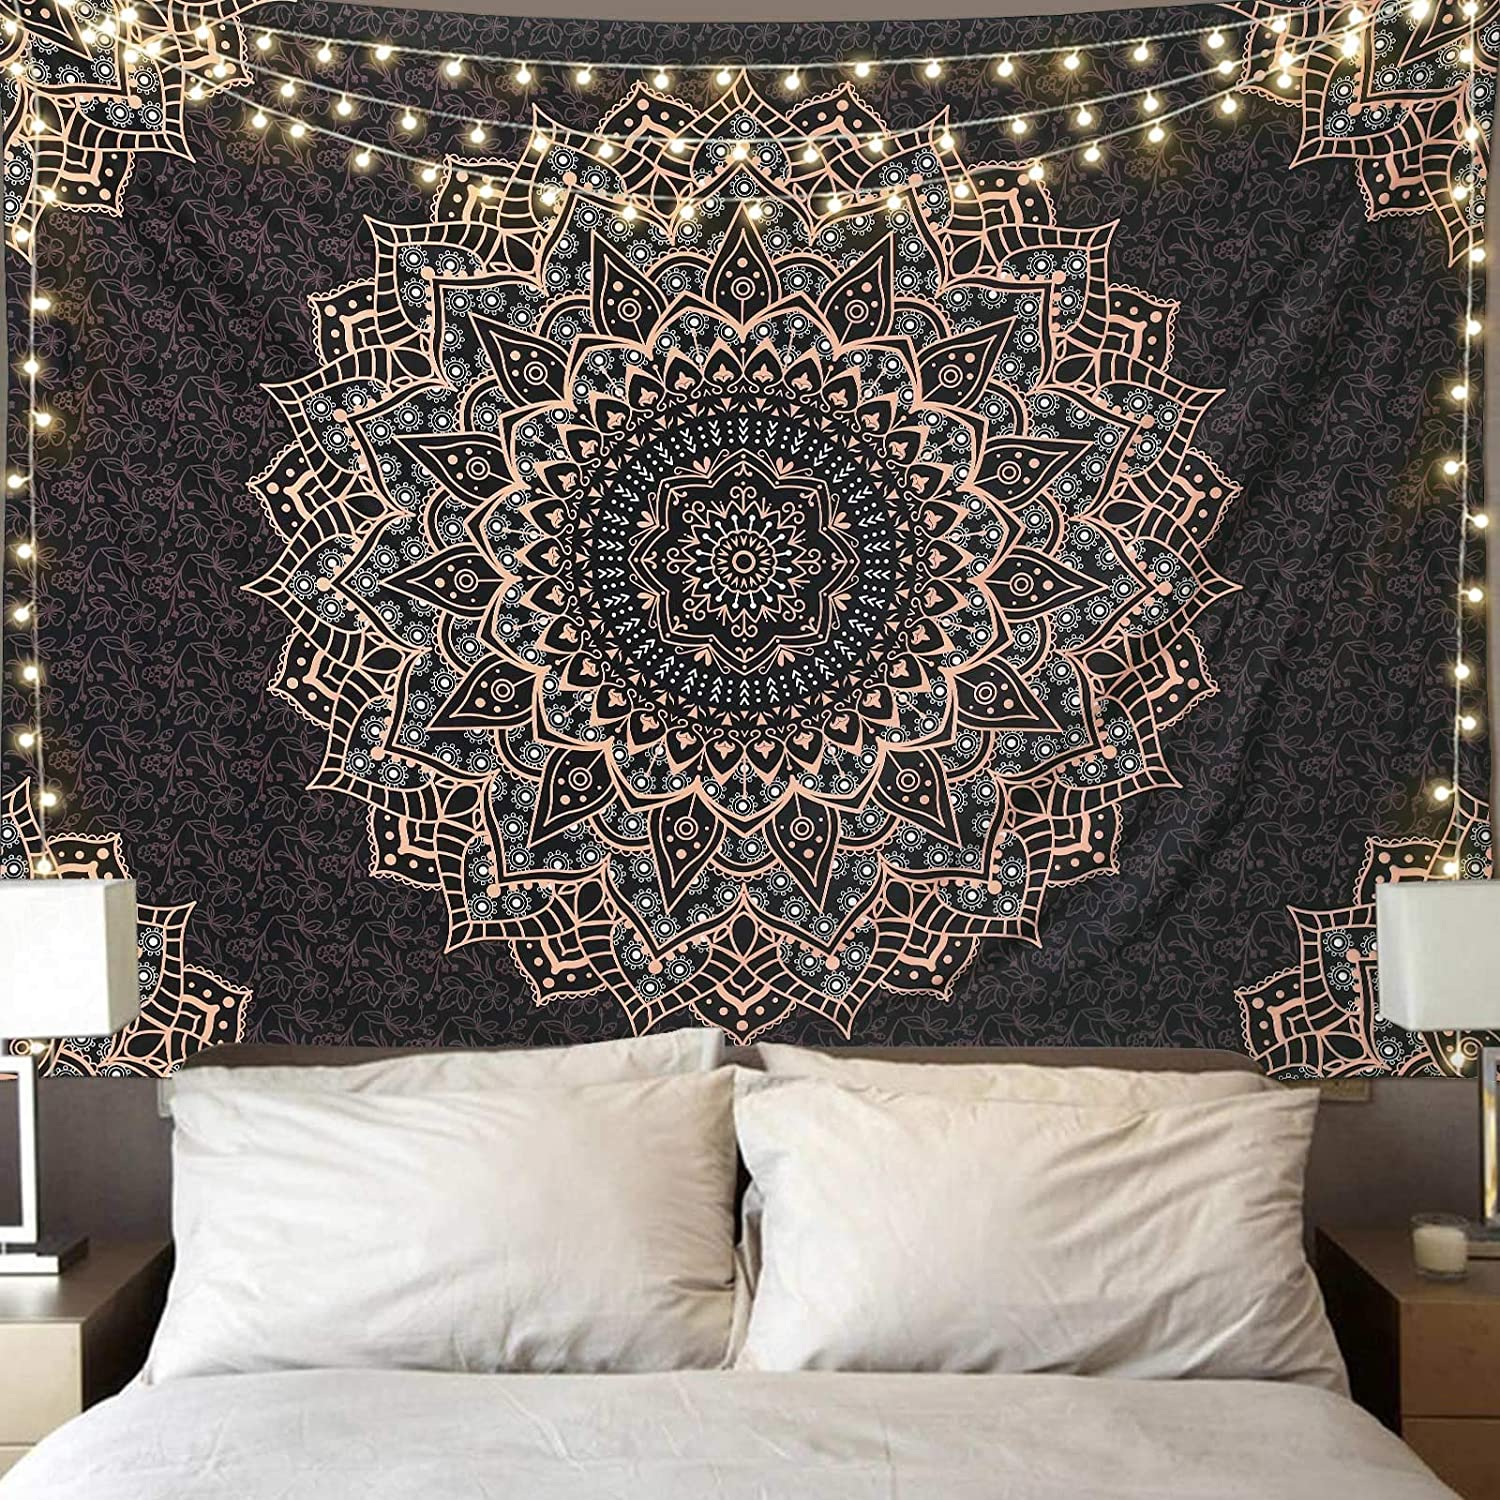 Black Golden Mandala Tapestry Wall Hanging Psychedelic Wall Tapestry Aesthetic Indian Hippie Wall Decor Bohemian Wall Art Boho Home Decor for Bedroom,Living Room,Dorm